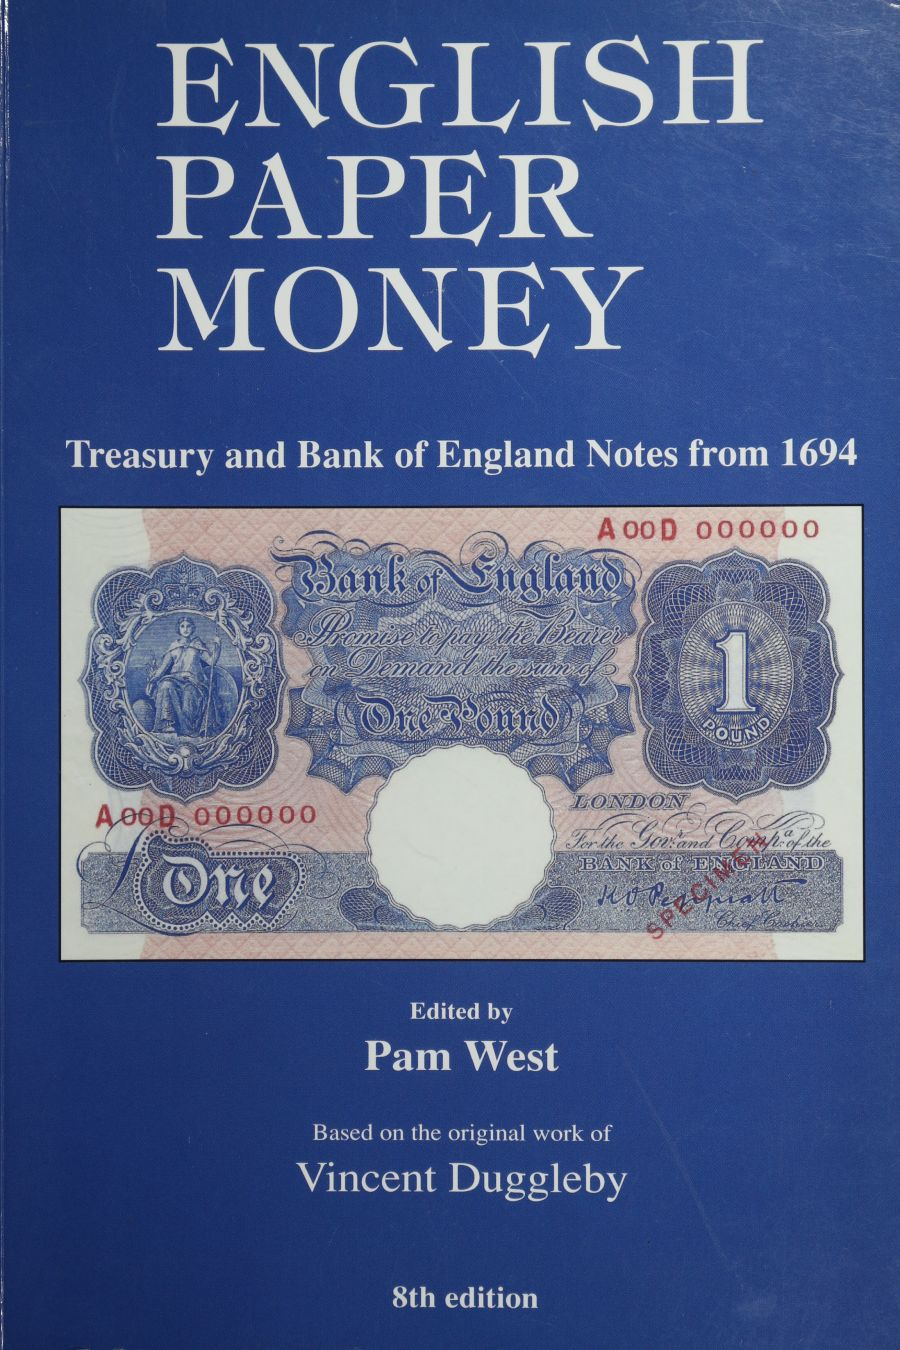 English Paper Money Treasury and Bank of England notes from 1694